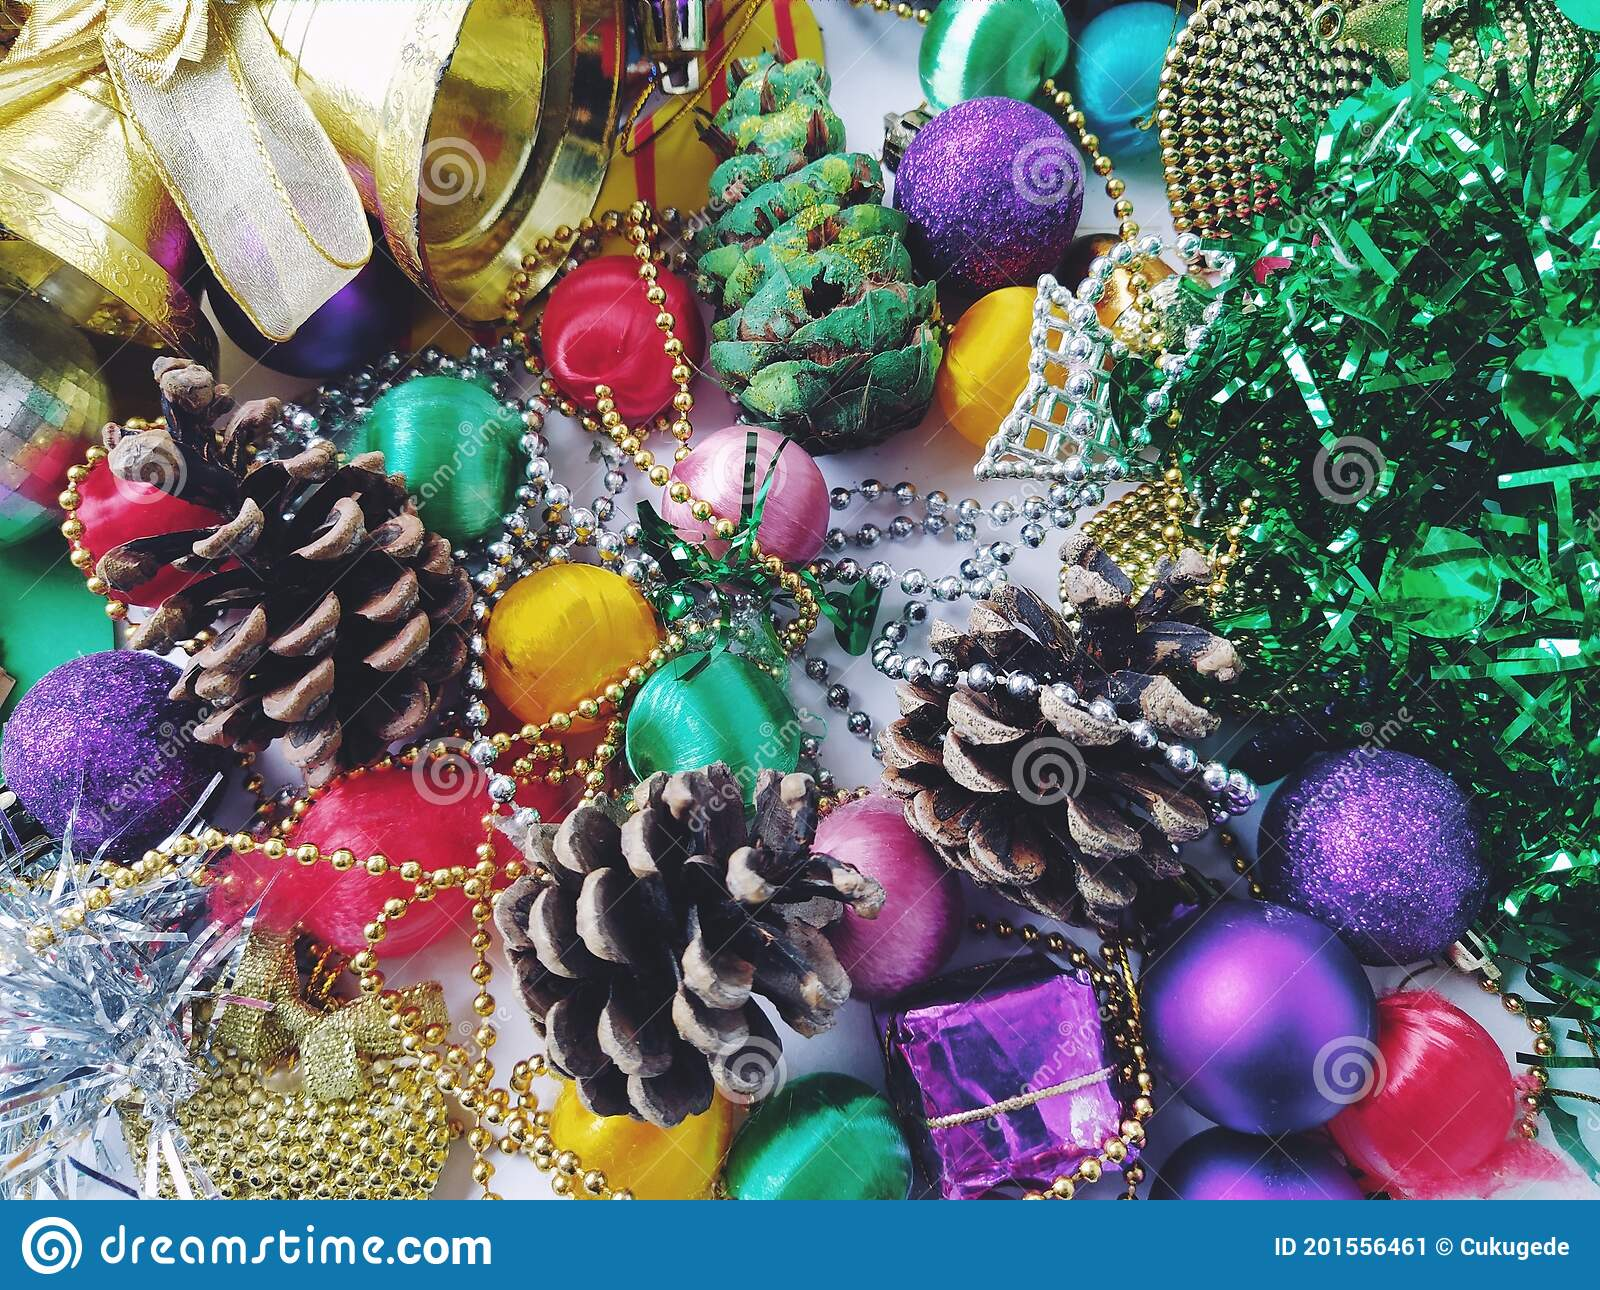 Christmas Decoration Collection Beautifully Arranged Shiny Bright Christmas Tree Decorations Green Foil Gifts Red Purple Stock Image Image Of Green Desk 201556461